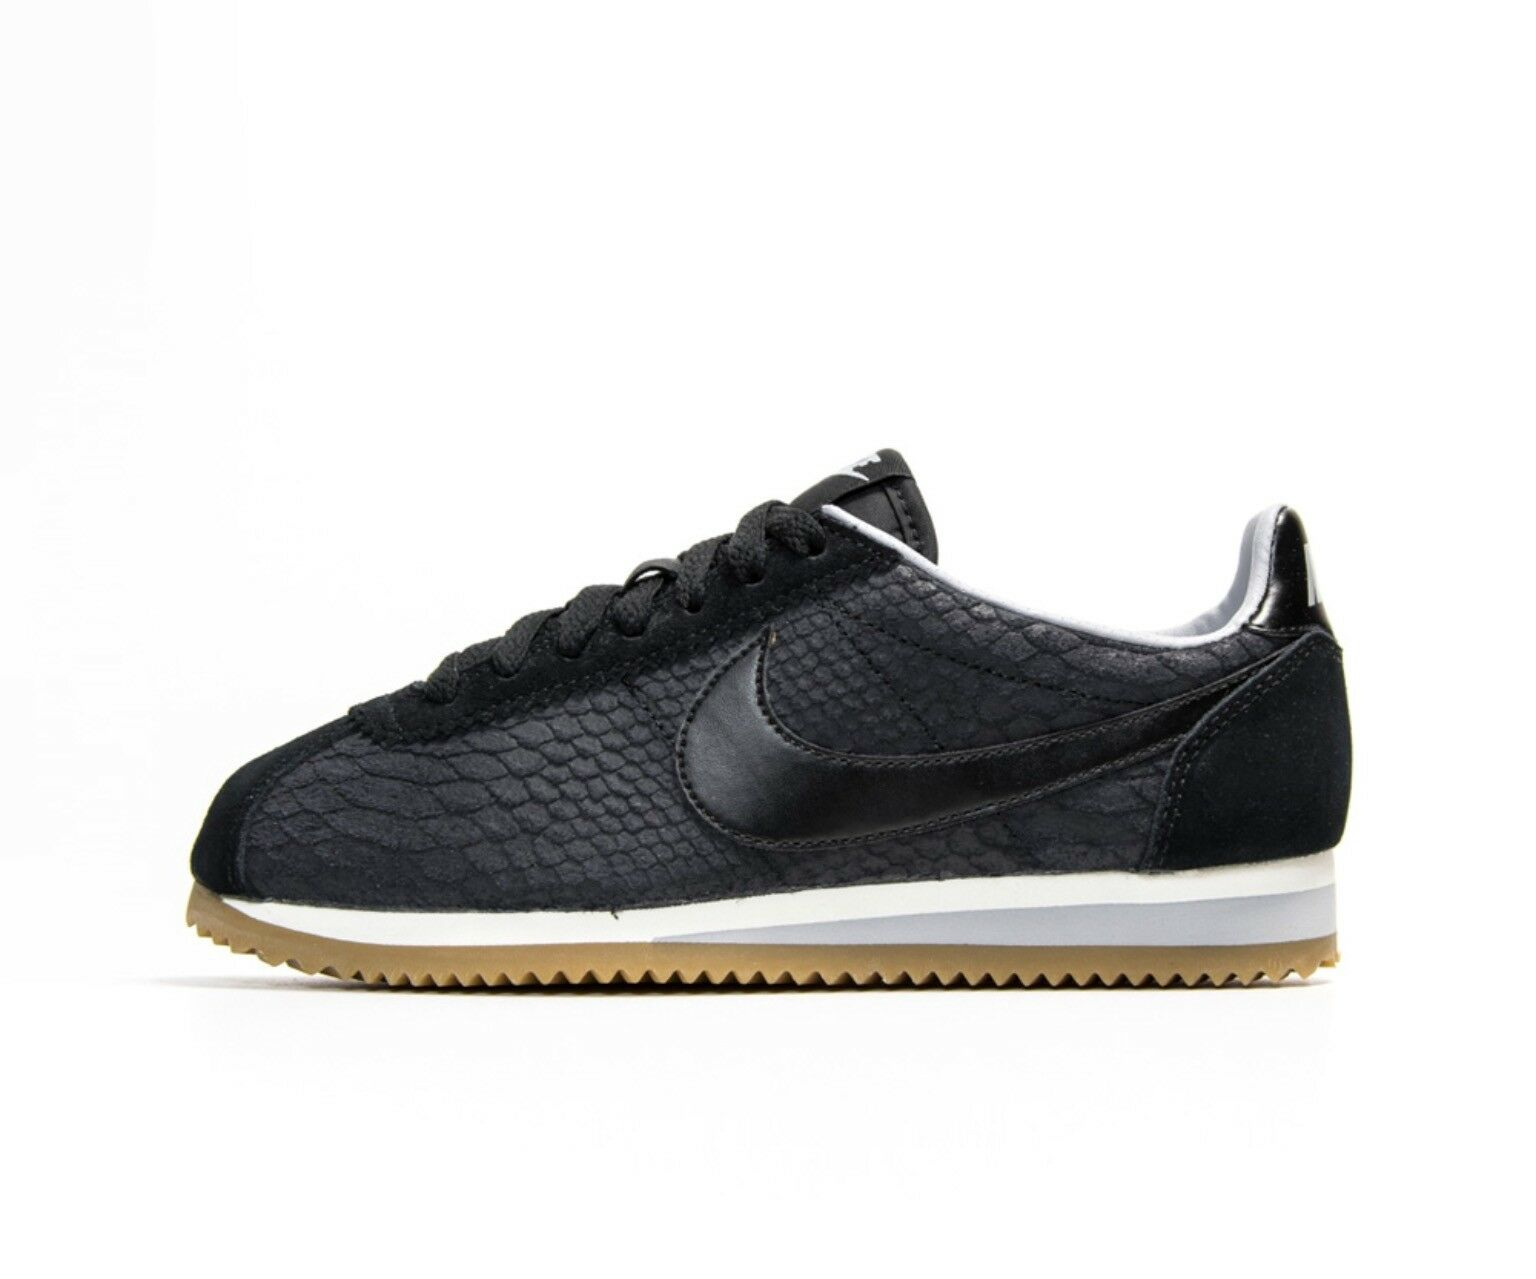 Nike Classic Cortez Leather PREM 833657-003, UK3.5/EUR36.5/US6 BNIB no lid